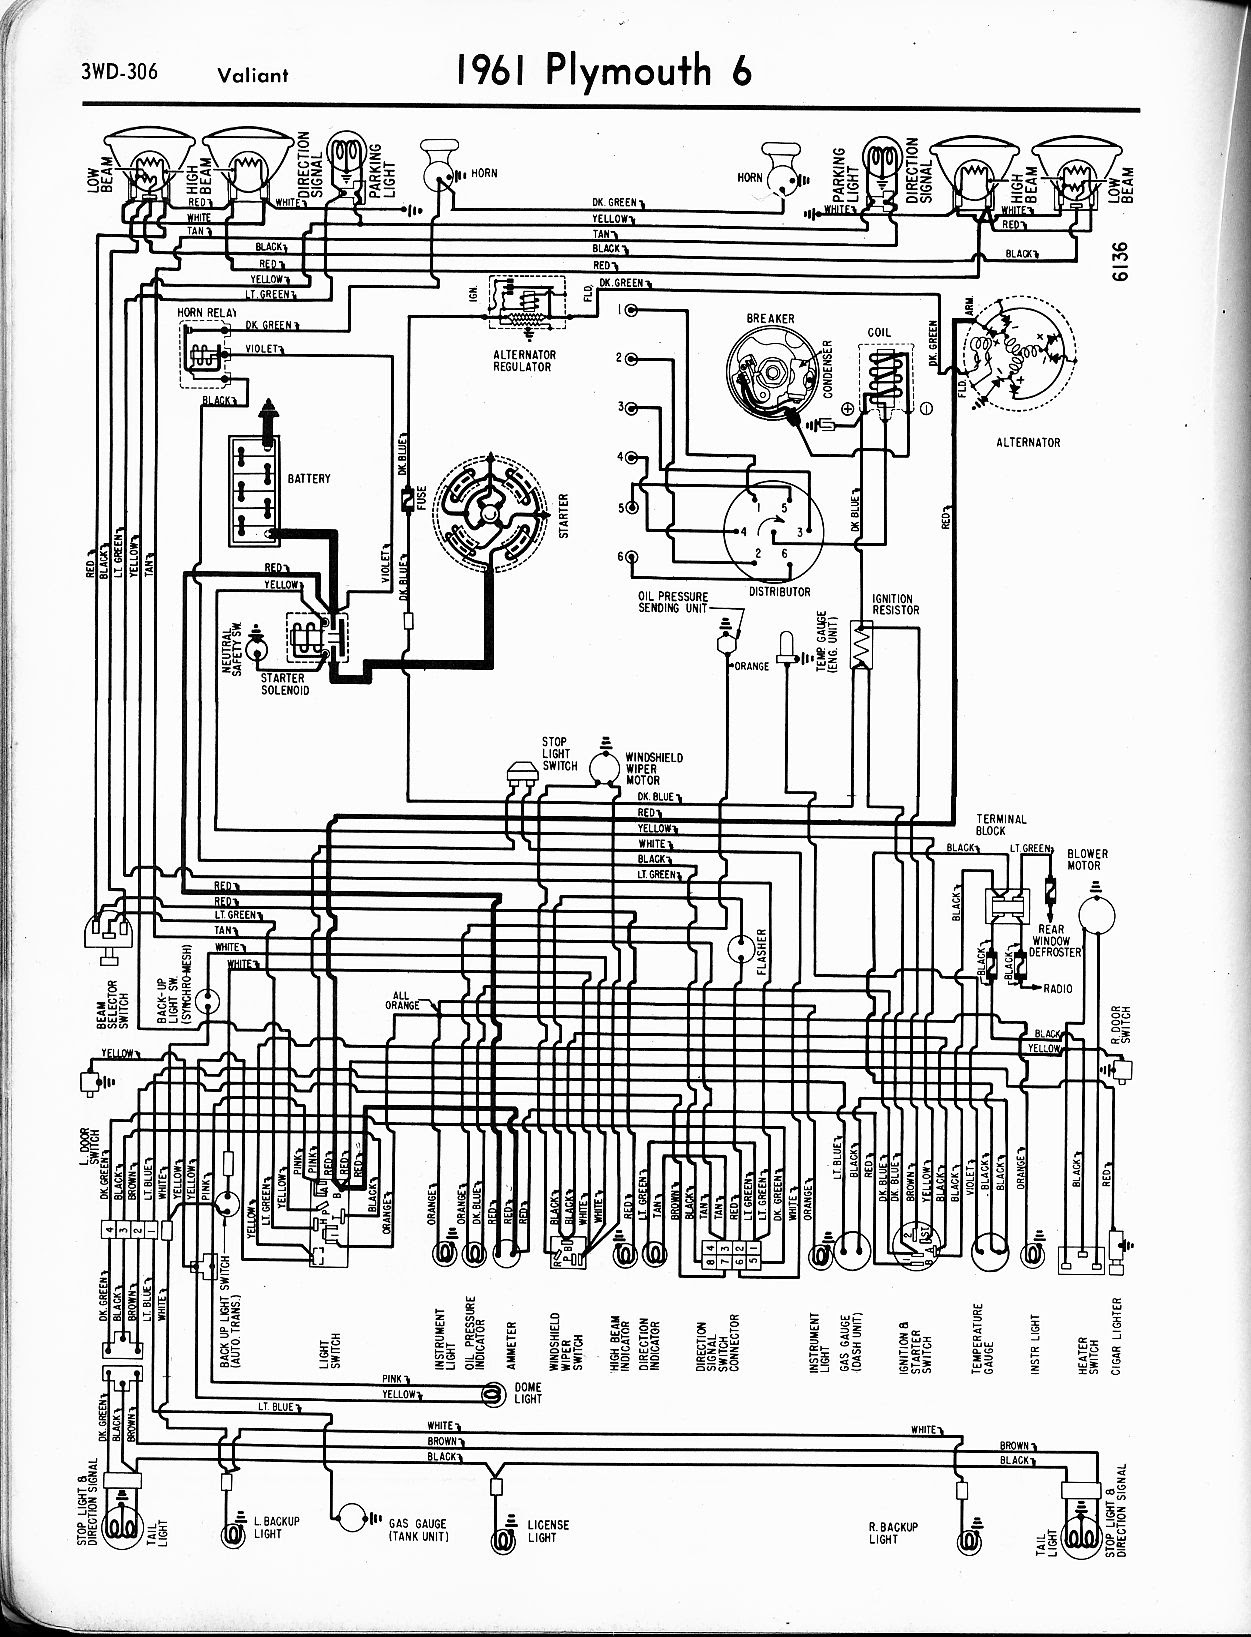 Diagram 49 Plymouth Wiring Diagram Full Version Hd Quality Wiring Diagram Drain Warm Gsdportotorres It